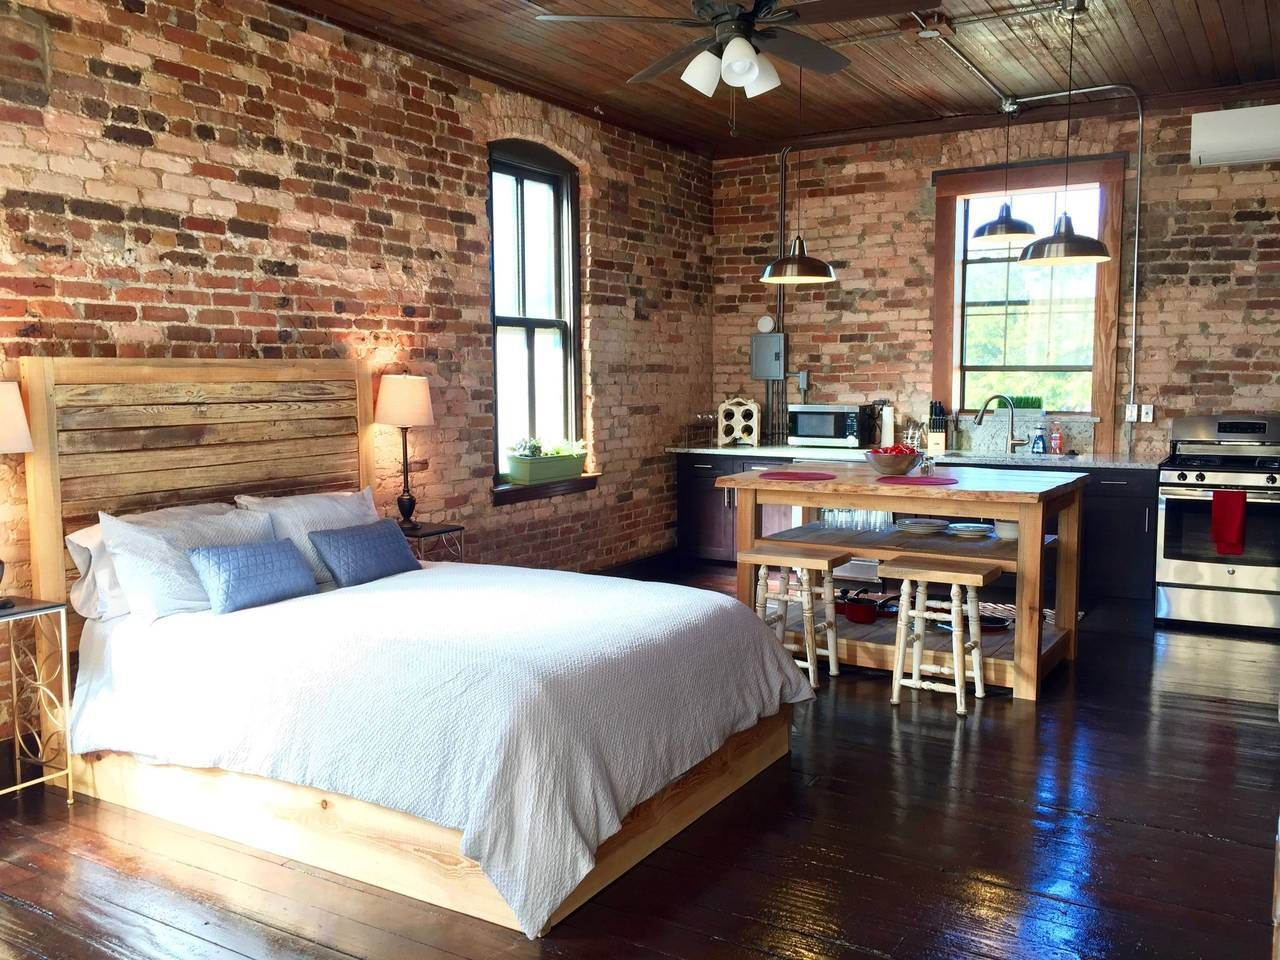 Loft :) - Get $25 credit with Airbnb if you sign up with this link http://www.airbnb.com/c/groberts22